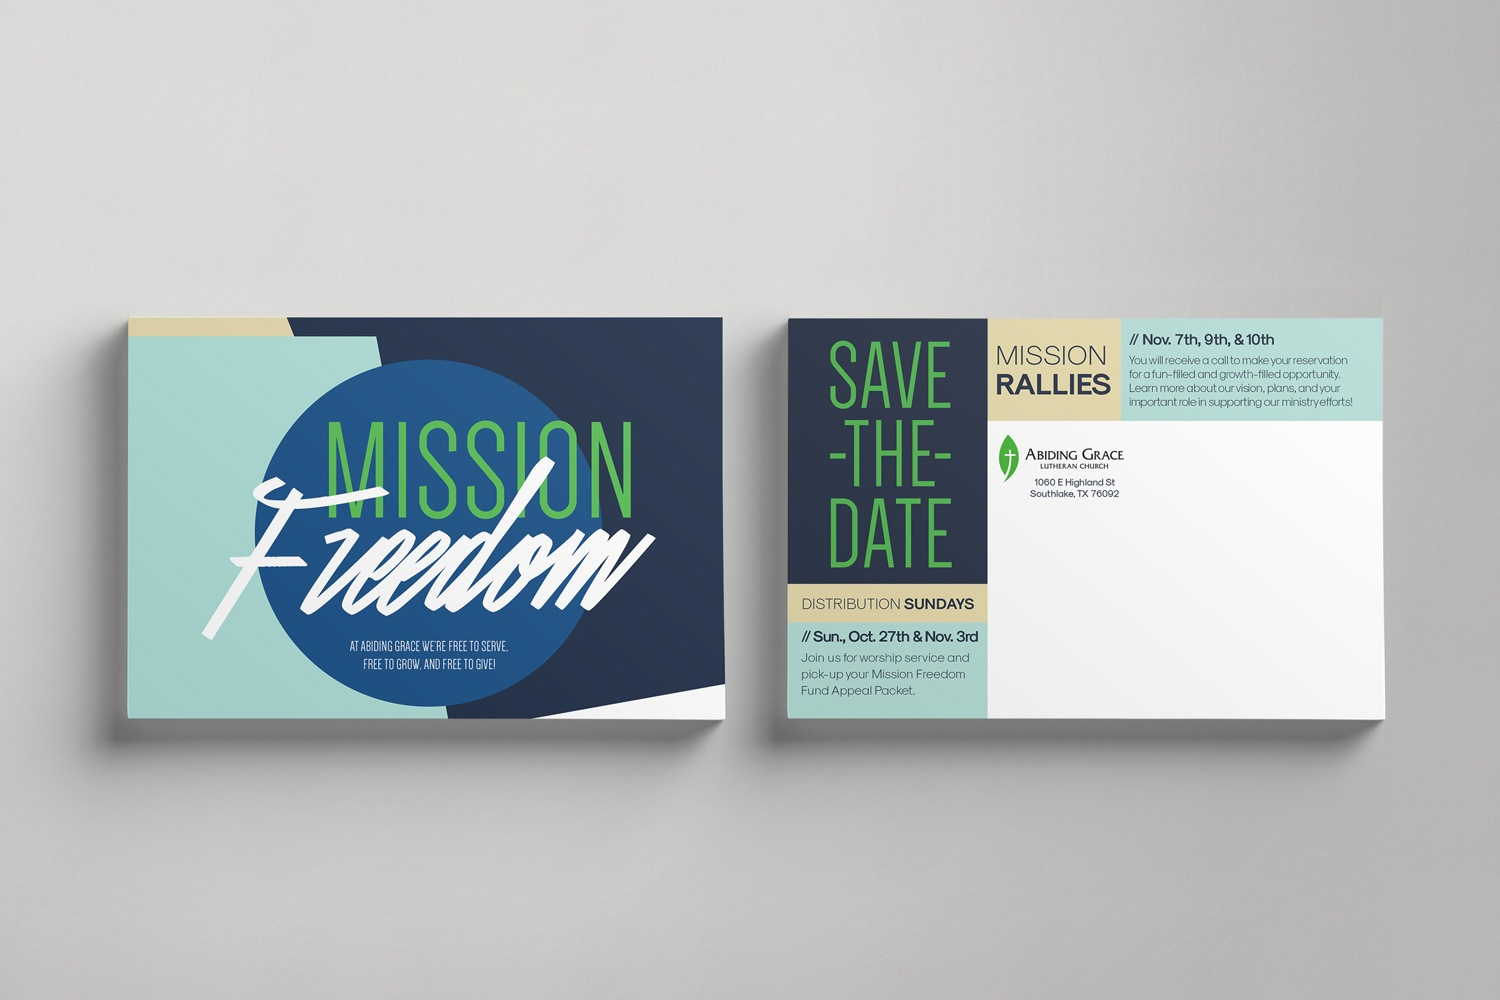 Standard 4 x 6 in. Postcard Mailer for Church Capital Fundraiser by Abstract Union in Lincoln, NE